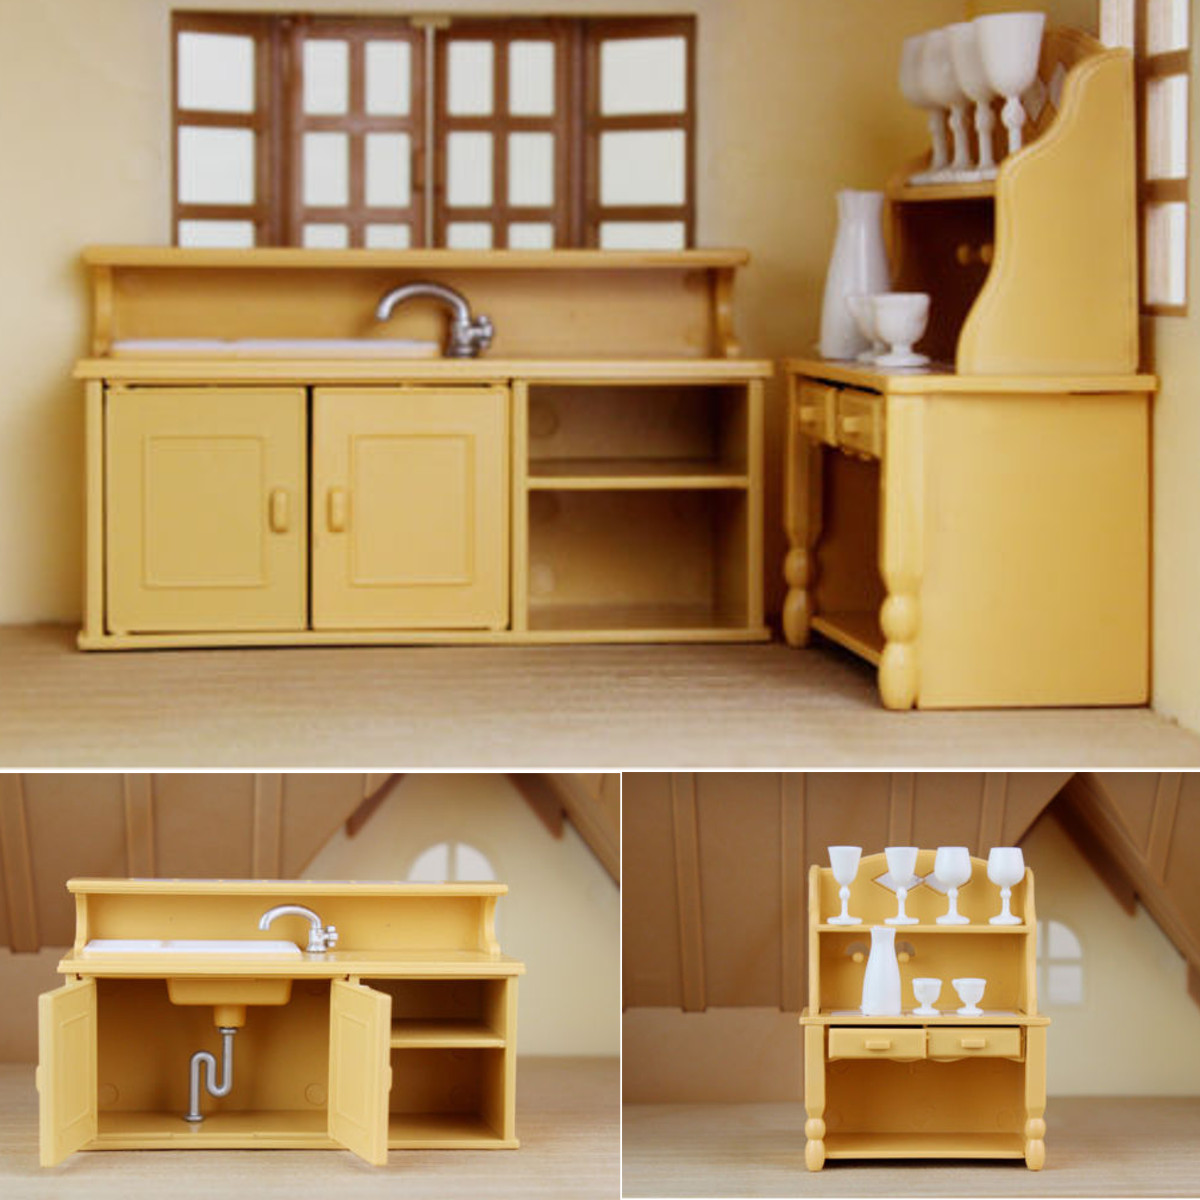 Kitchen Cabinets Miniature Doll House Safe Plastic Furniture Set Dining Room Decor Child Kids Play Toy Accessories Birthday Gift